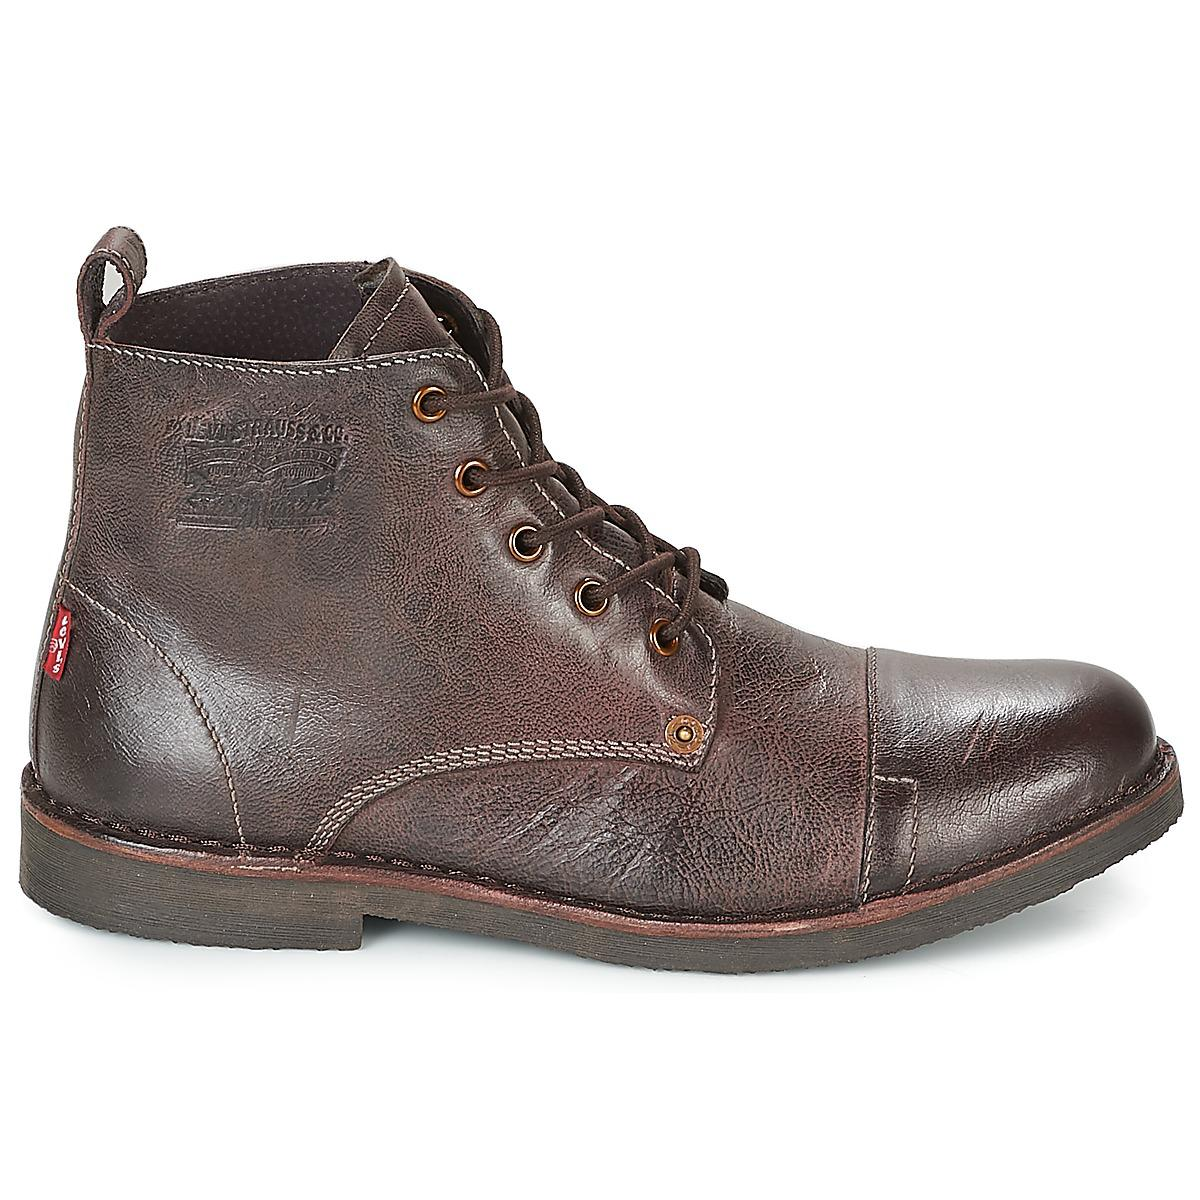 31981e54 Levi's Levis Track Men's Mid Boots In Brown in Brown for Men - Lyst